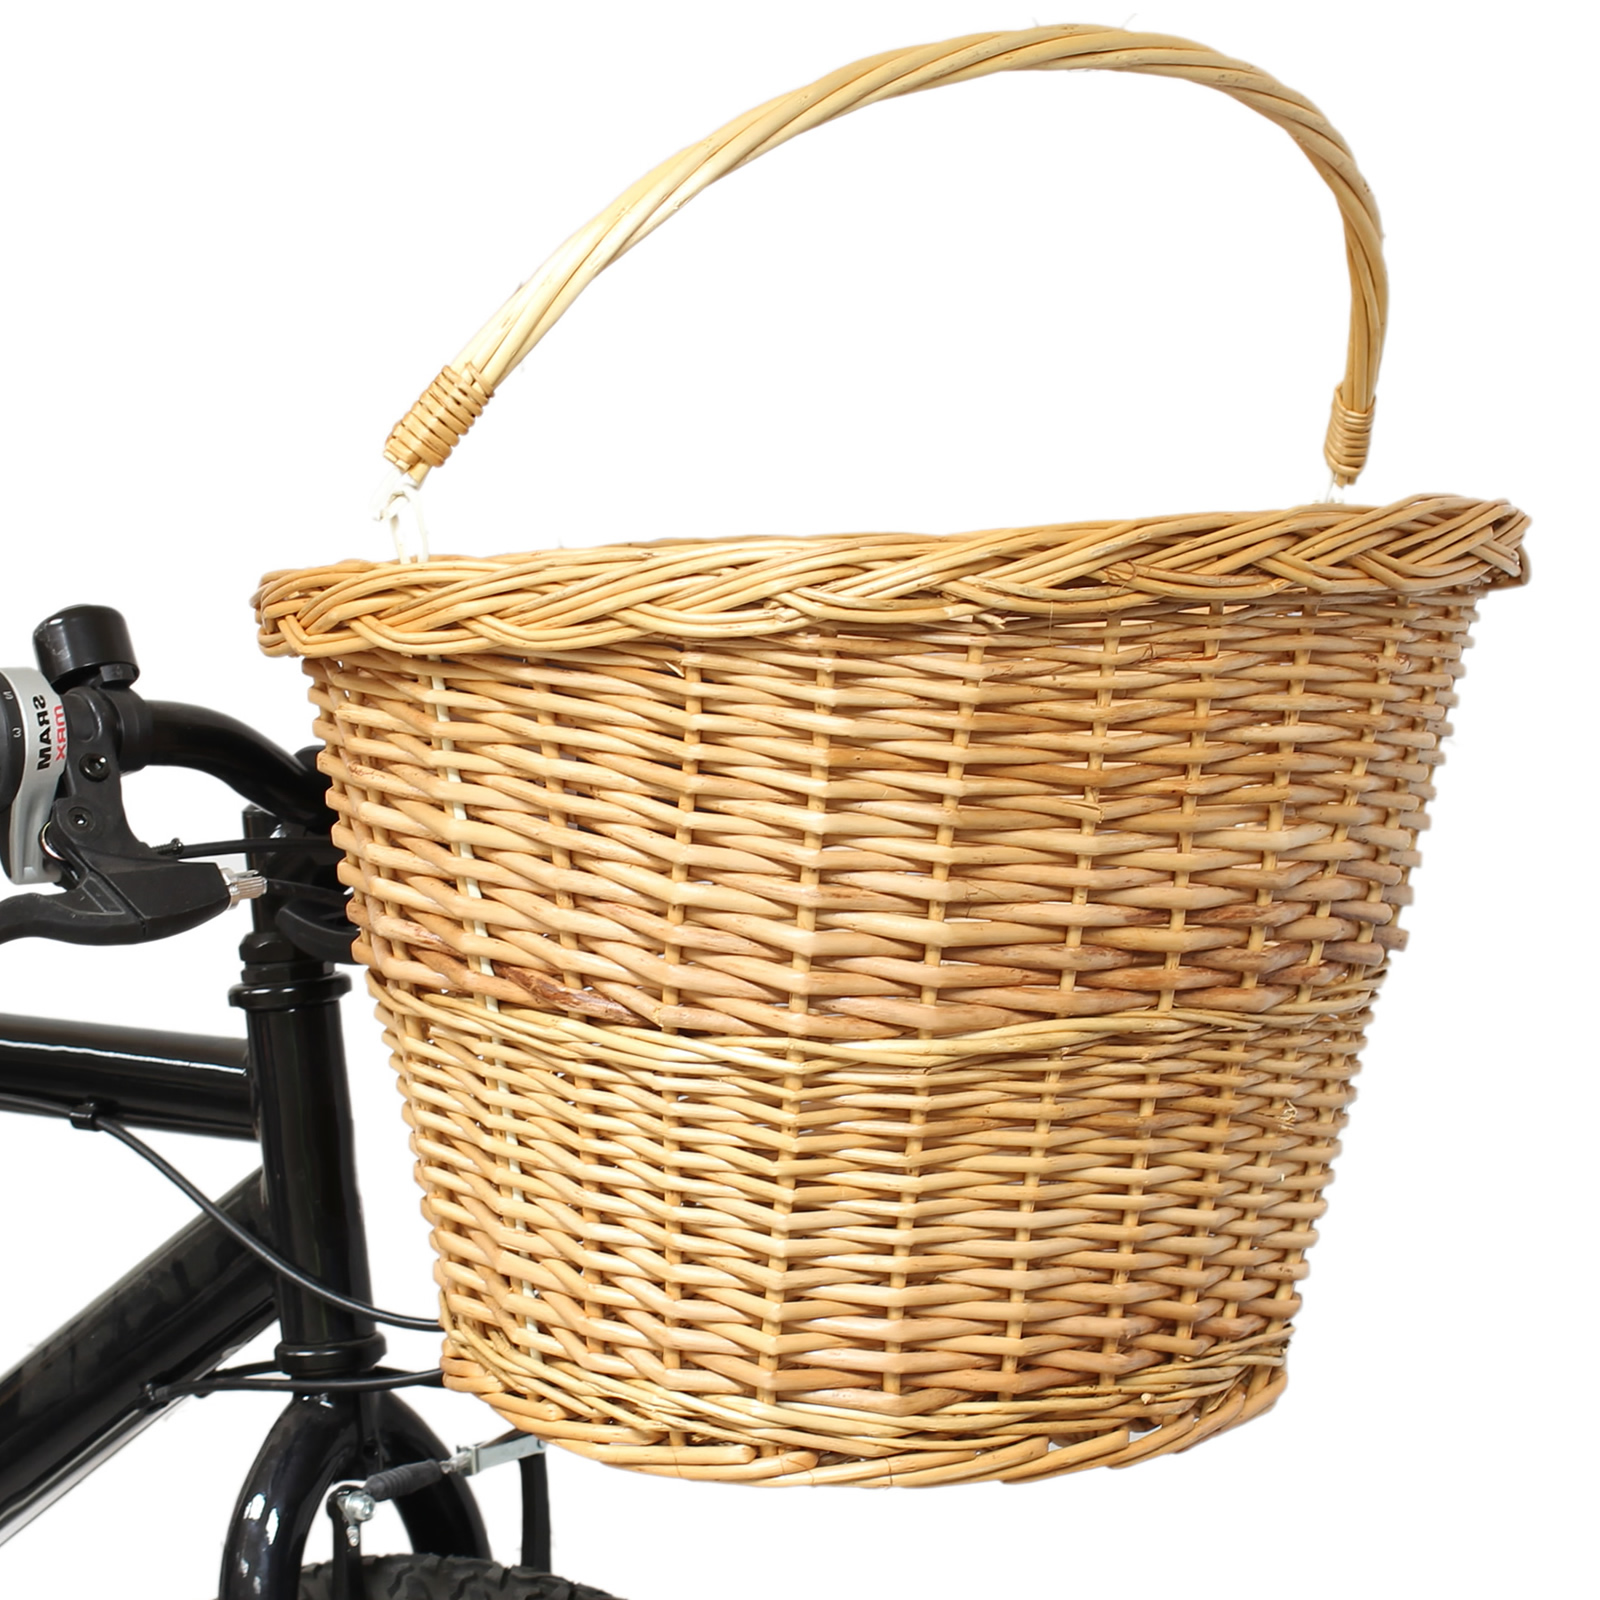 PEDALPRO BICYCLE/BIKE/CYCLE HANDLEBAR WICKER SHOPPING BASKET WITH CARRY HANDLE Enlarged Preview